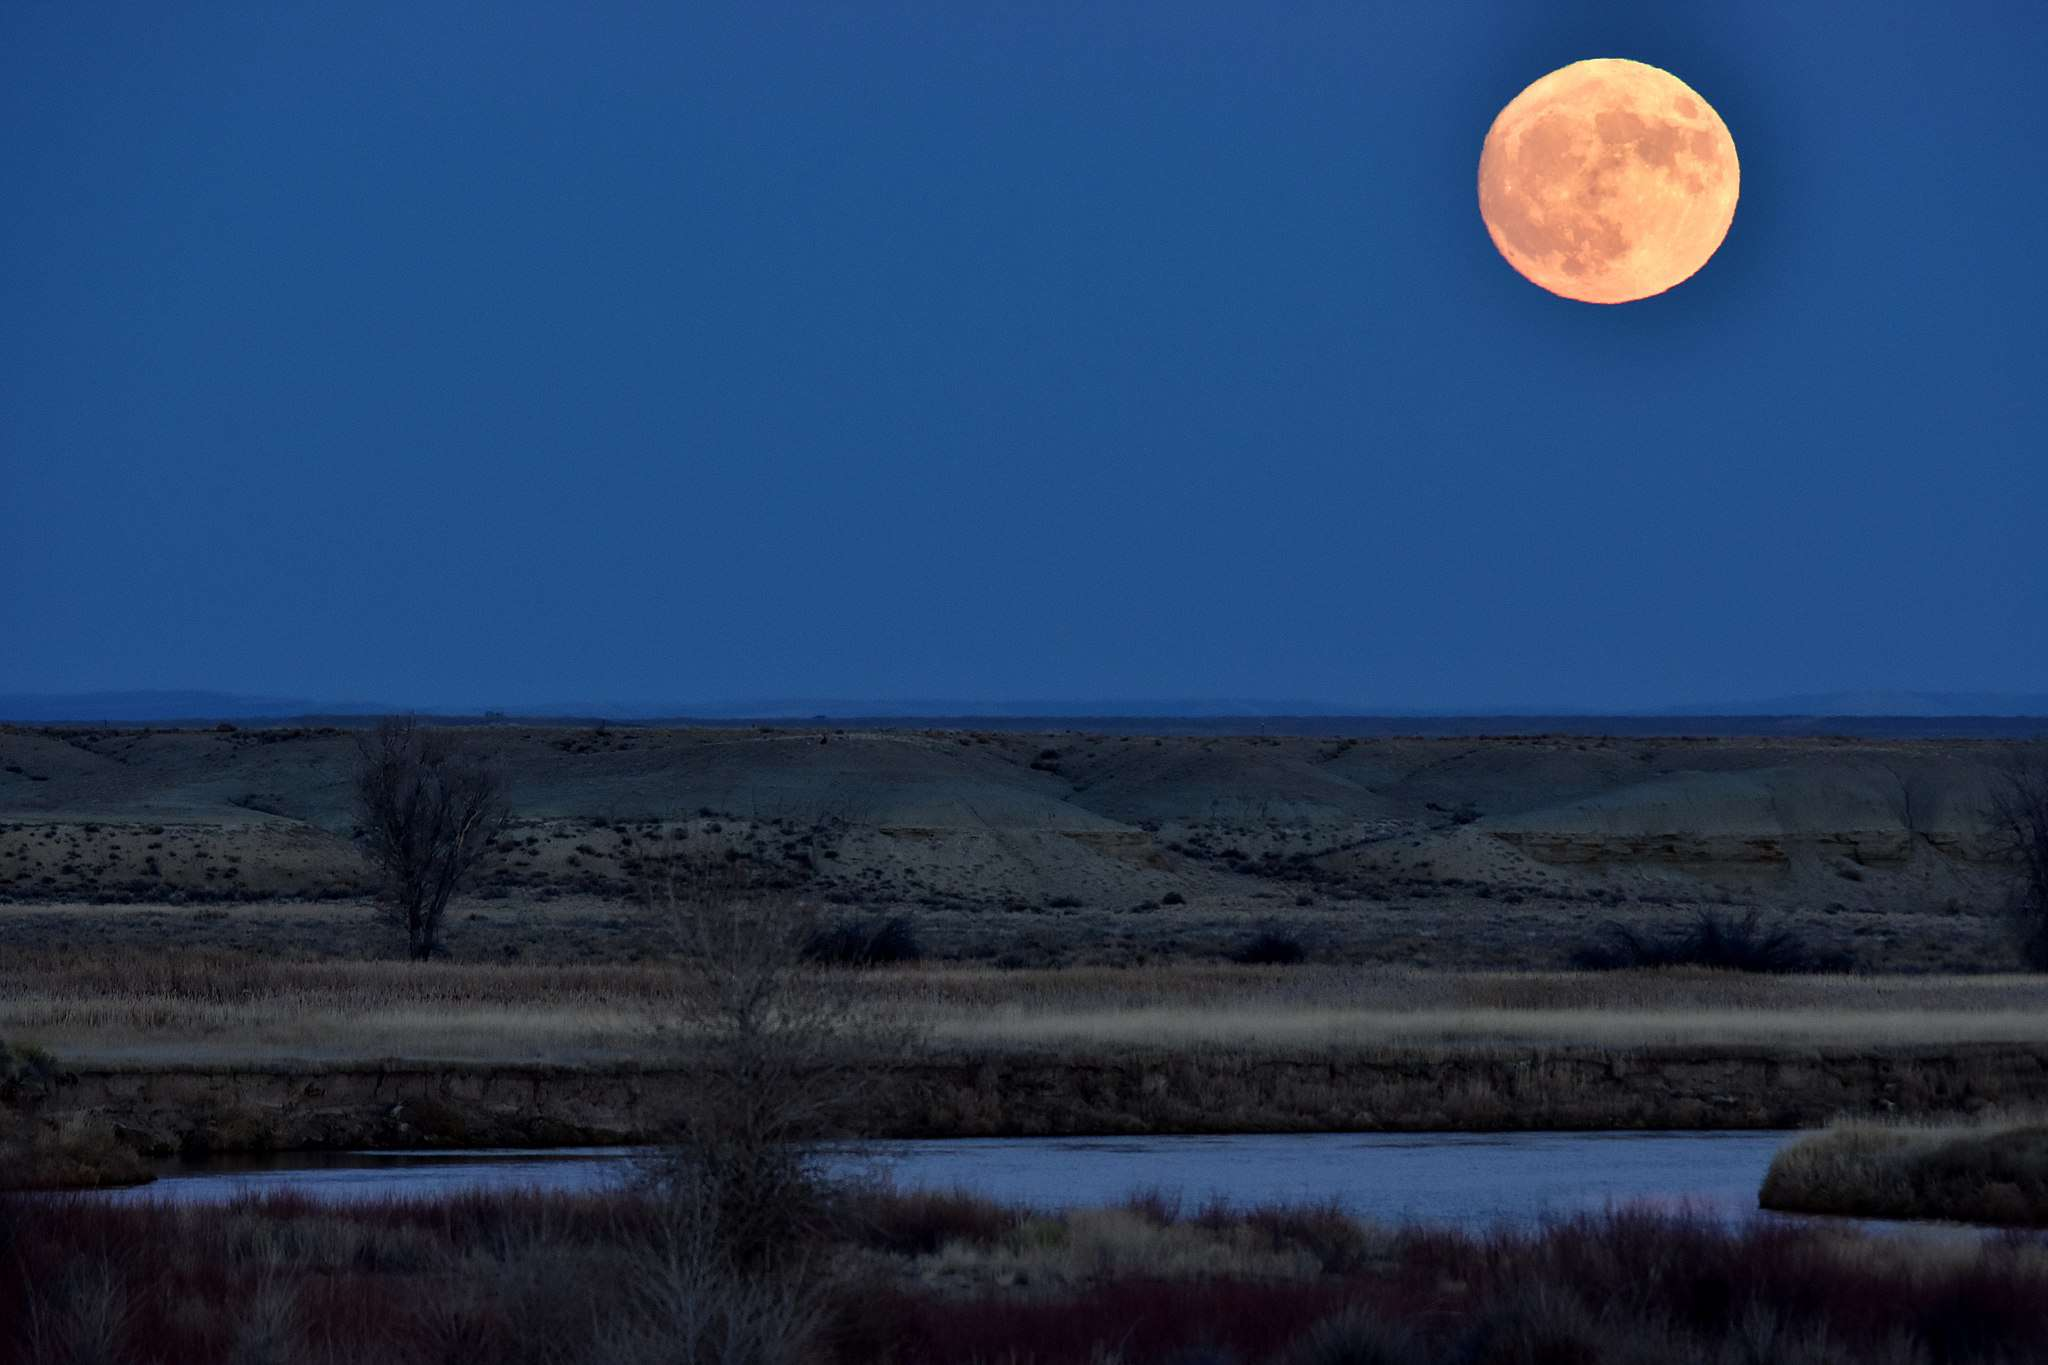 a full moon rises over a wildlife refuge in Wyoming